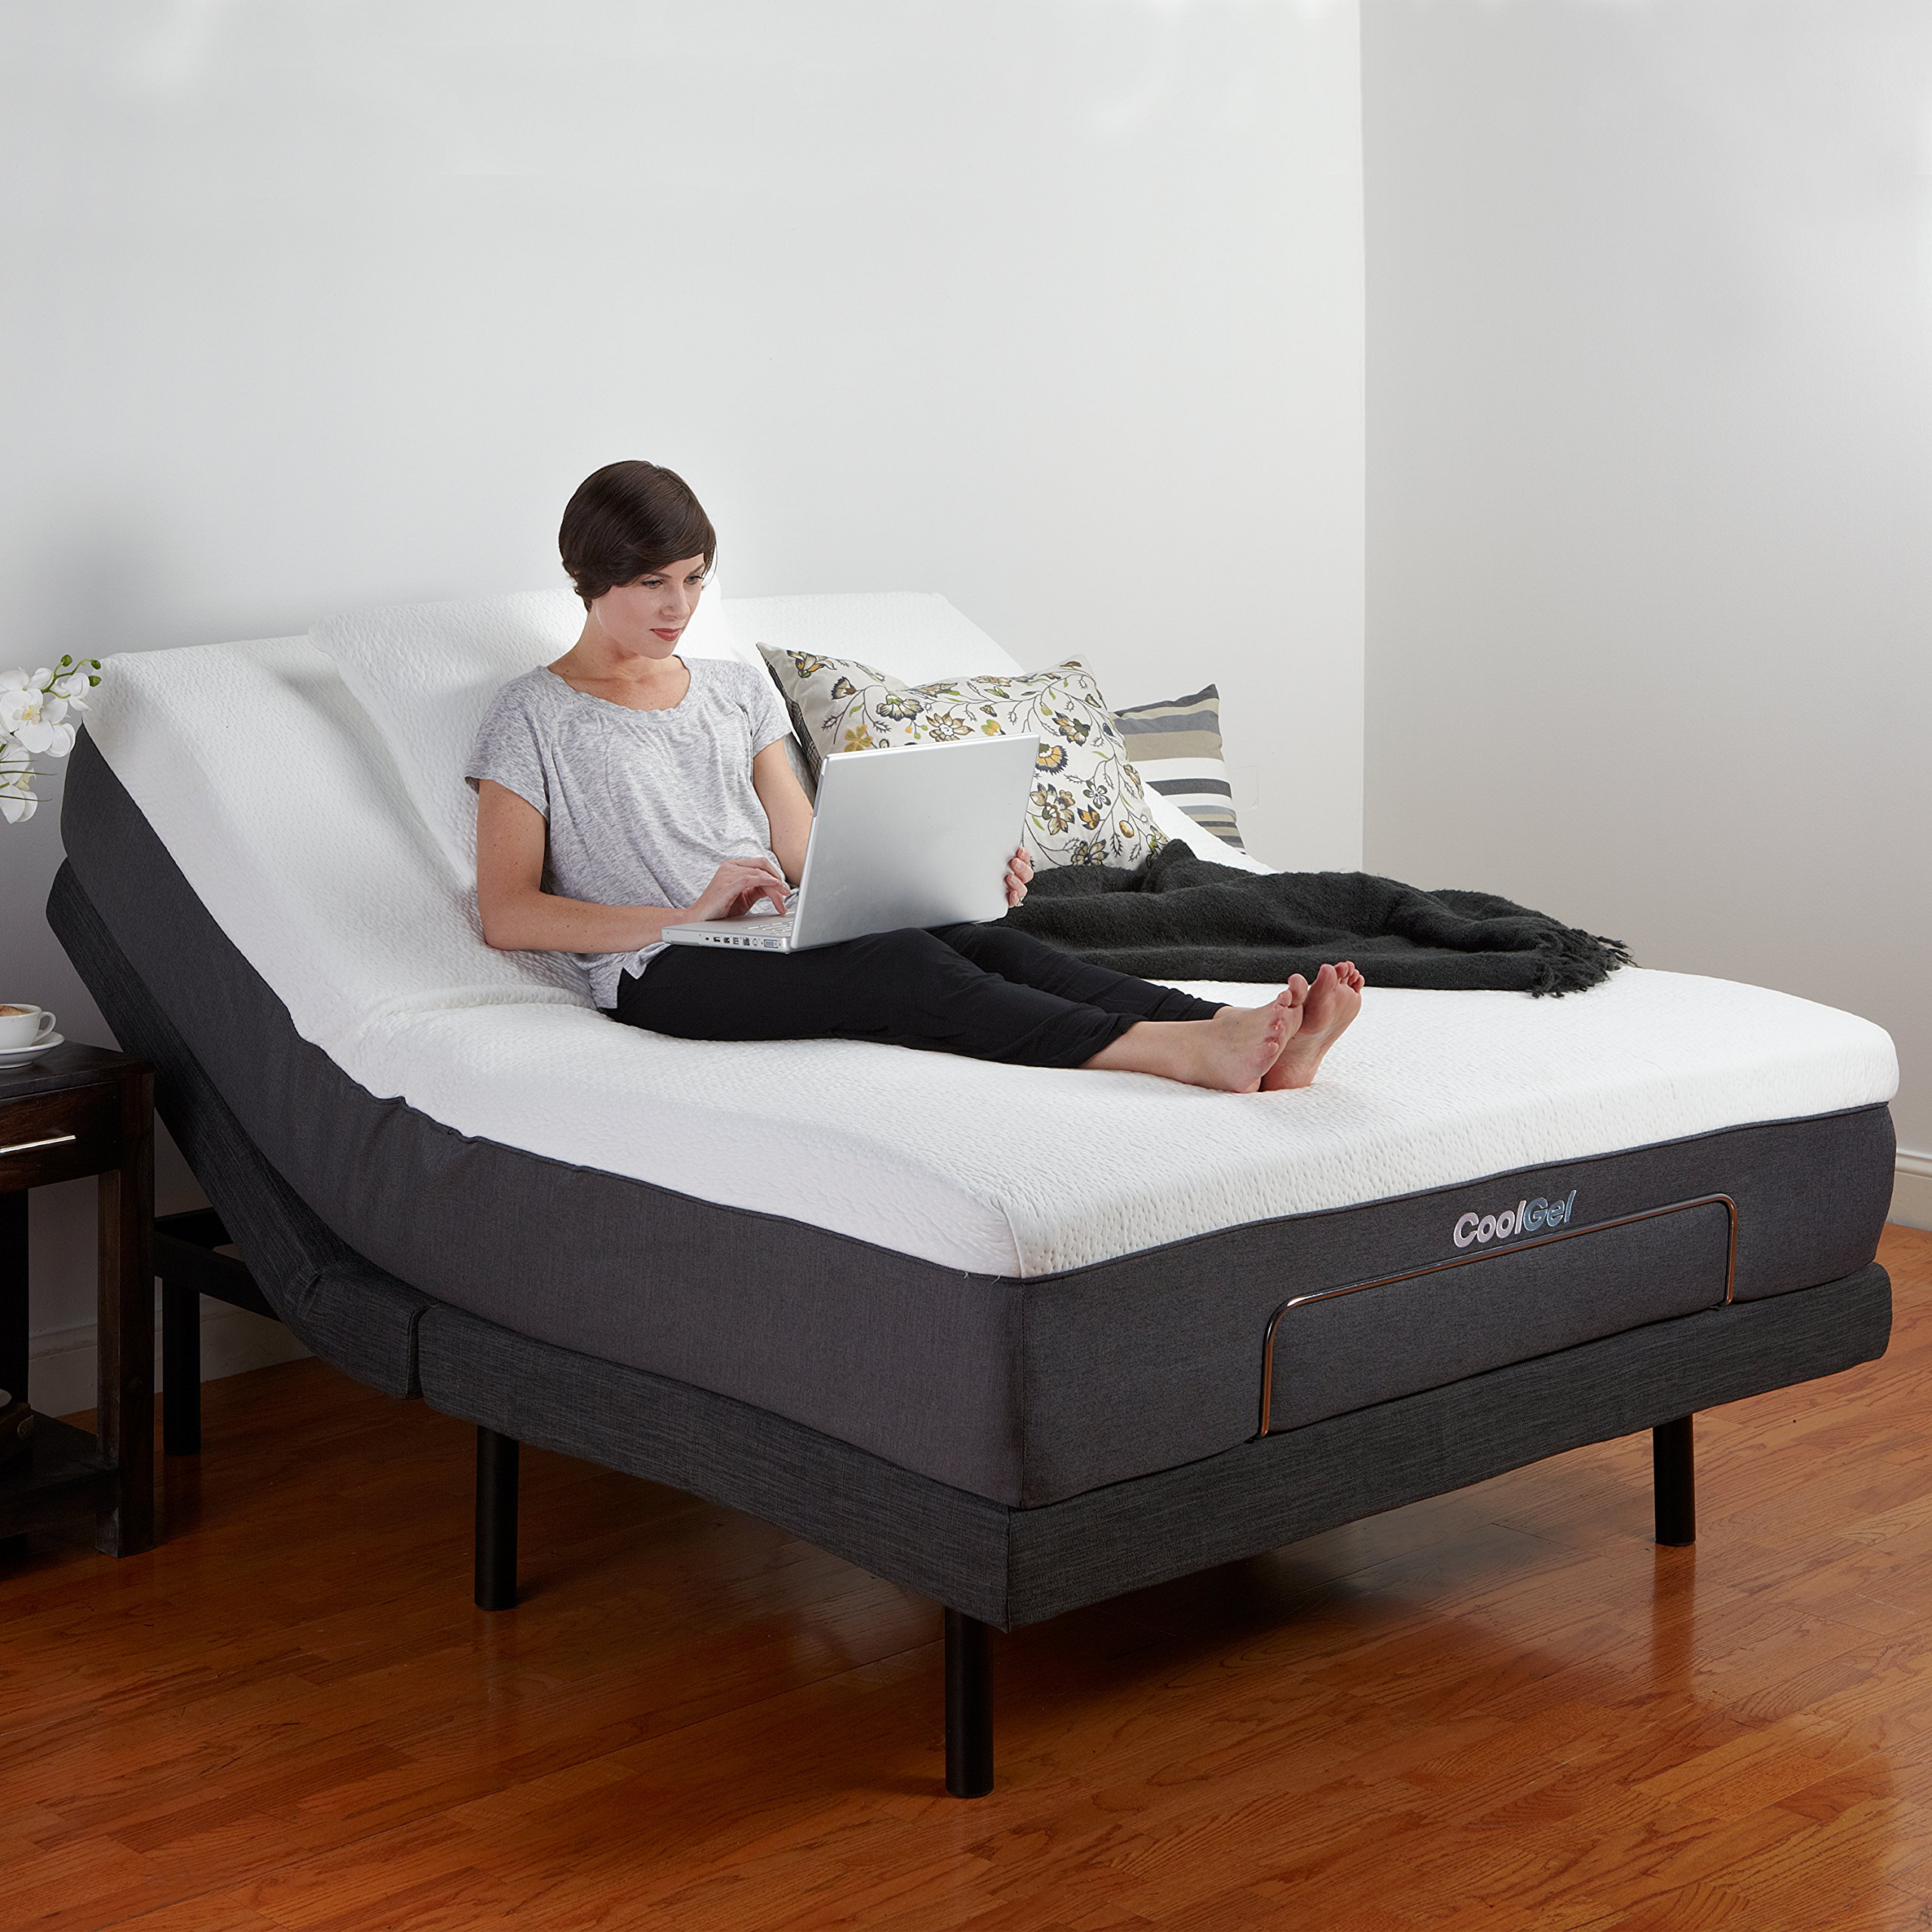 Classic Brands Adjustable Comfort Adjustable Bed Base